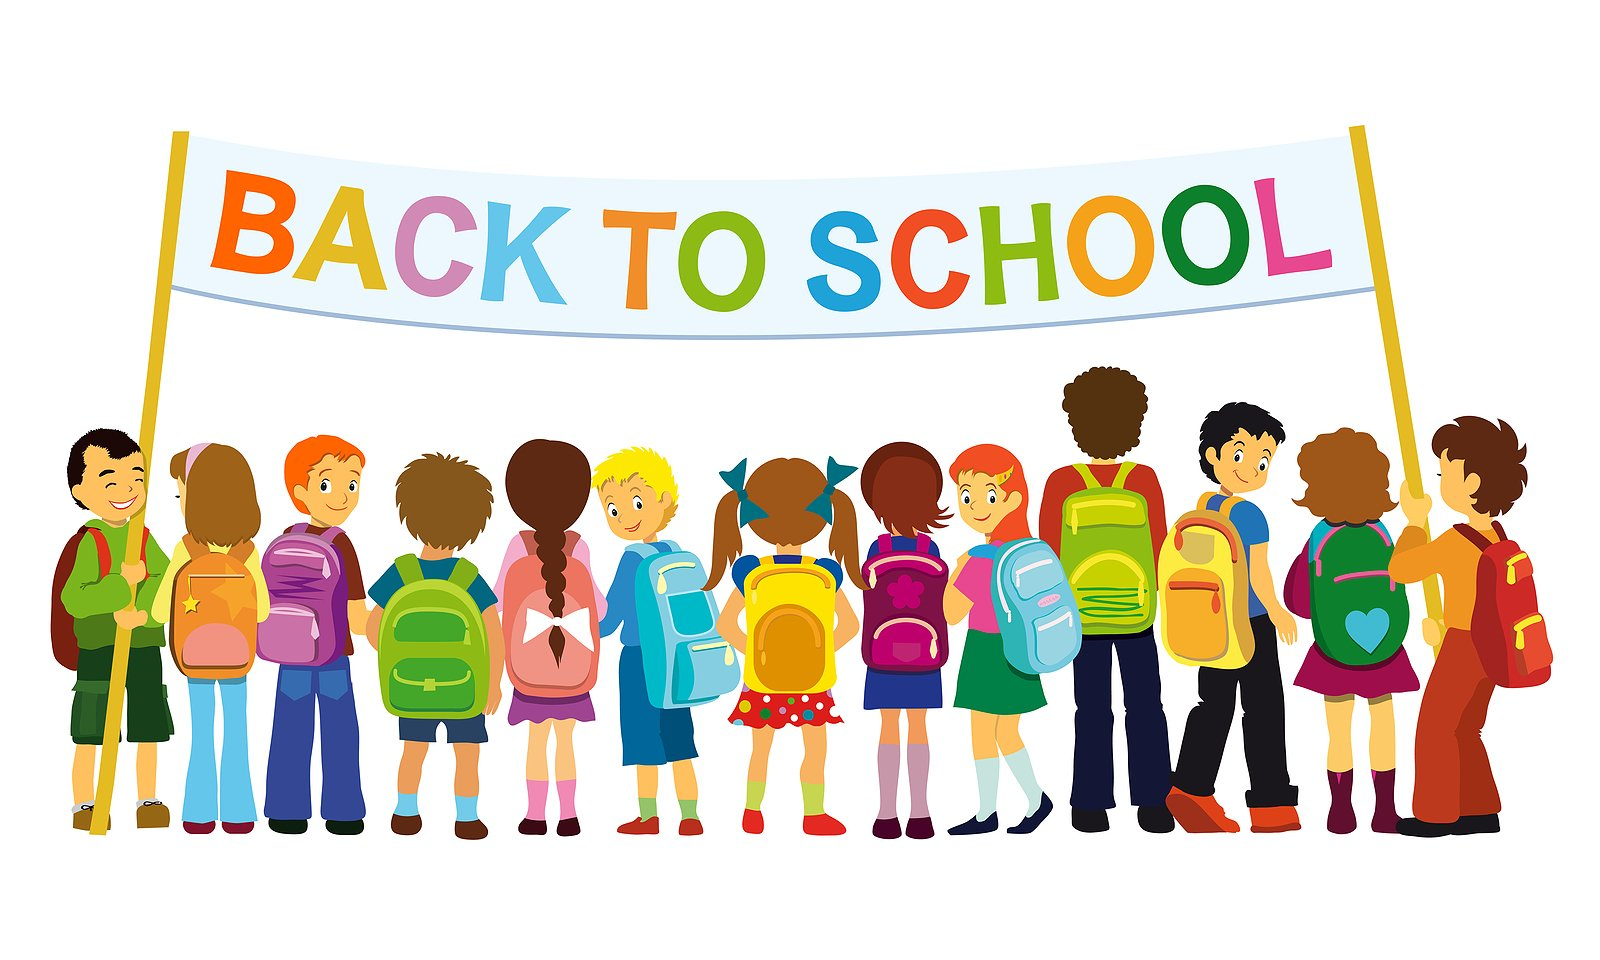 back-to-school-clip-art-274937